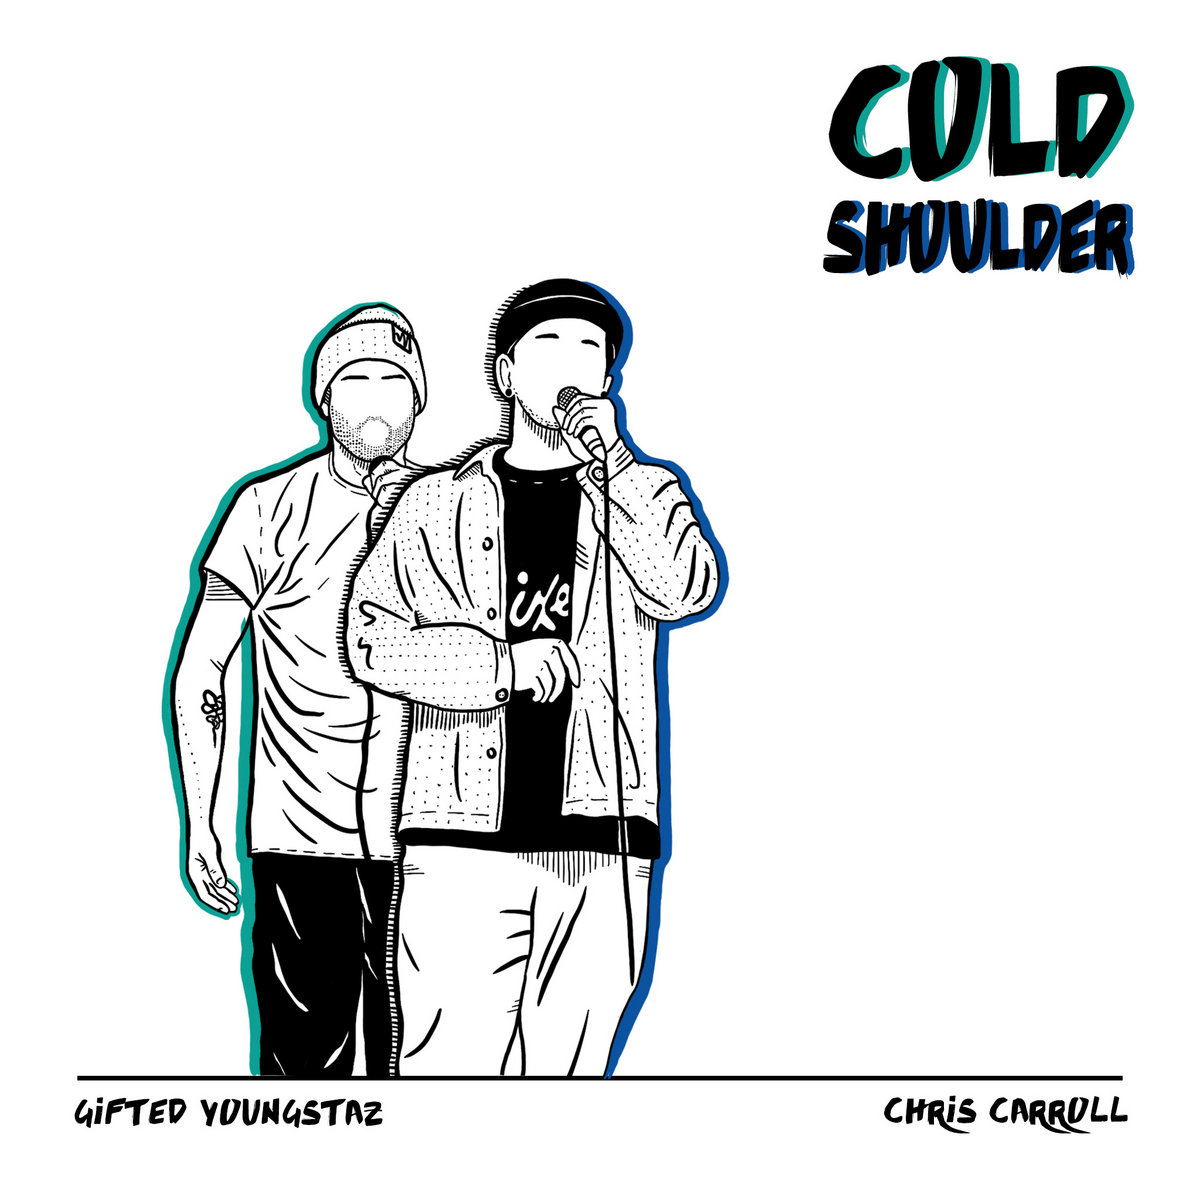 "Gifted Youngstaz & Chris Carroll-""Cold Shoulder"" Single. 2020. Released by Gifted Youngstaz."